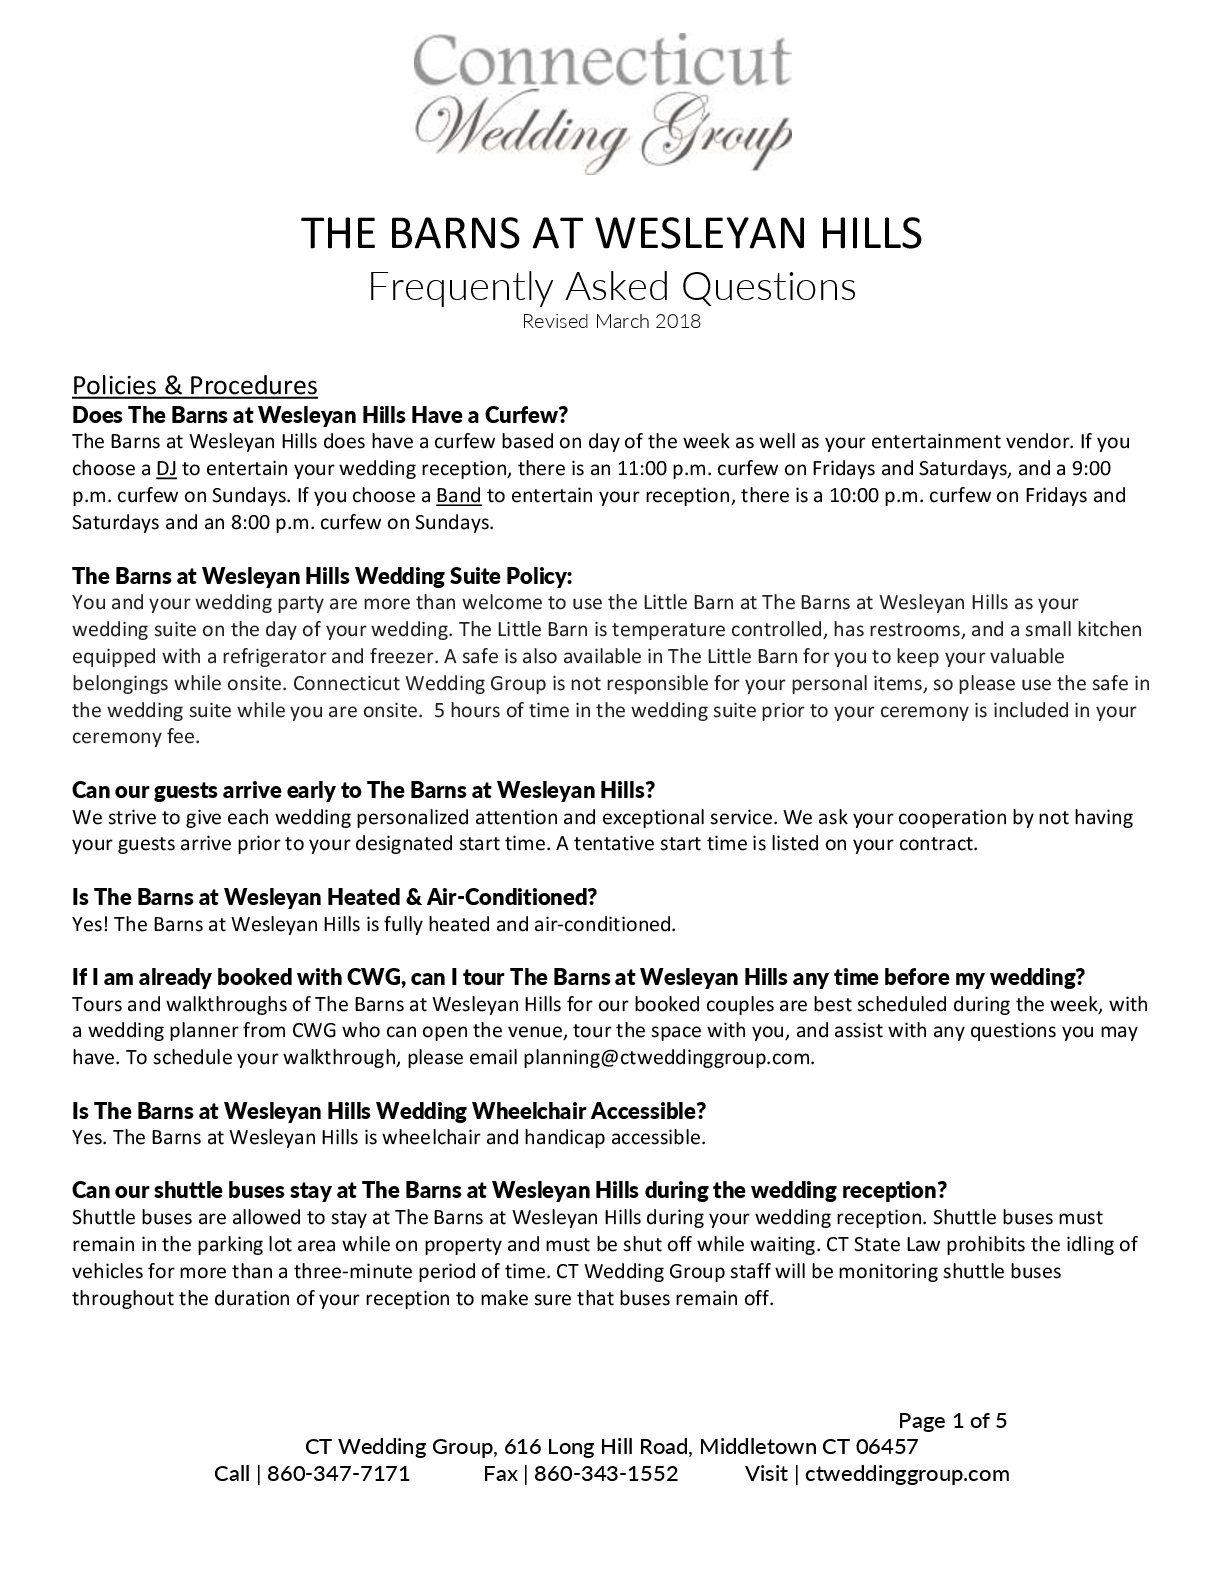 Frequently-Asked-Questions-Barns-March-2018-001